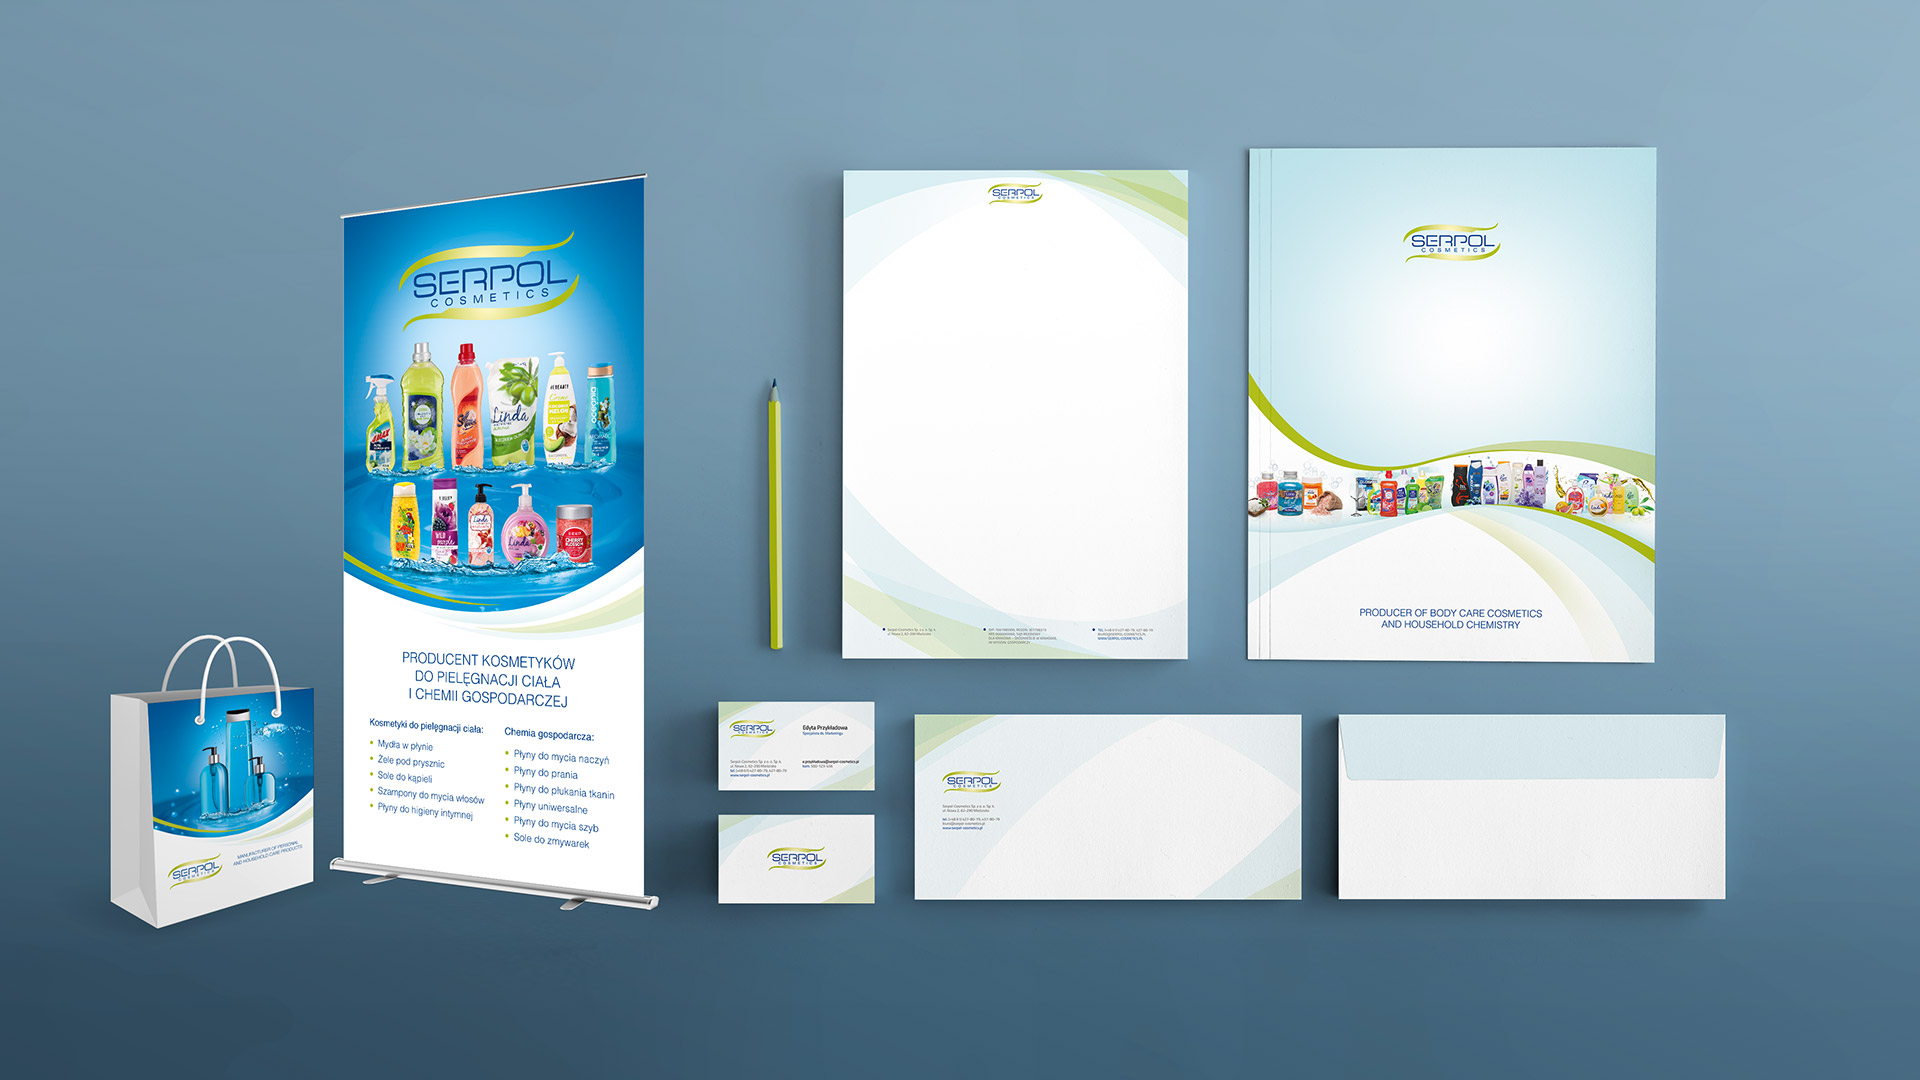 Serpol Cosmetics - corporate identity